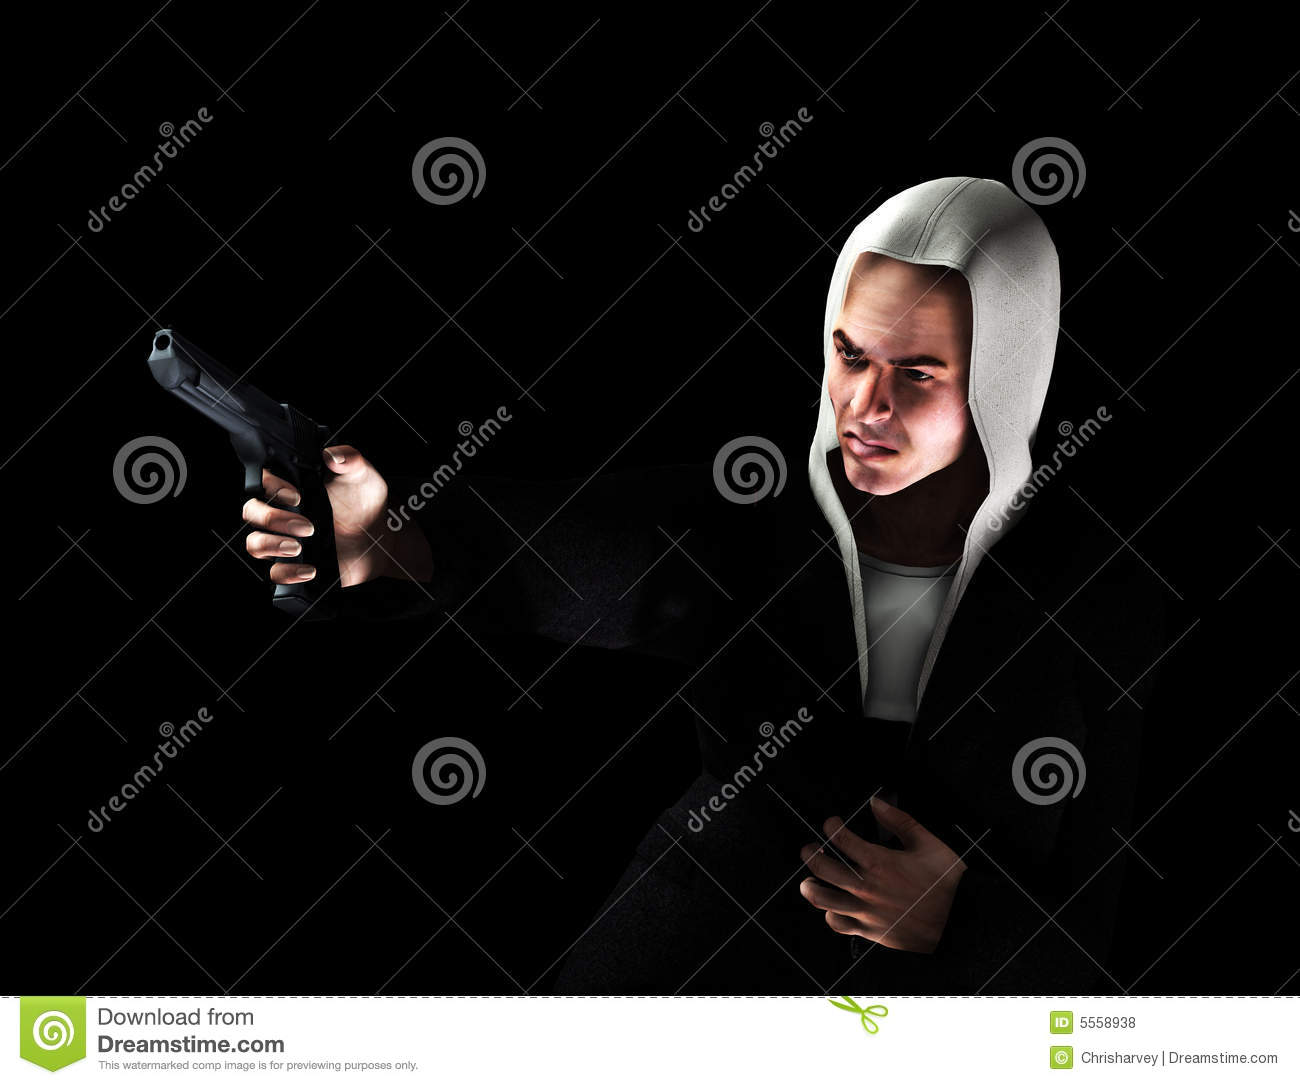 What Is An Asbo >> Thug With Gun 2 stock illustration. Illustration of ...